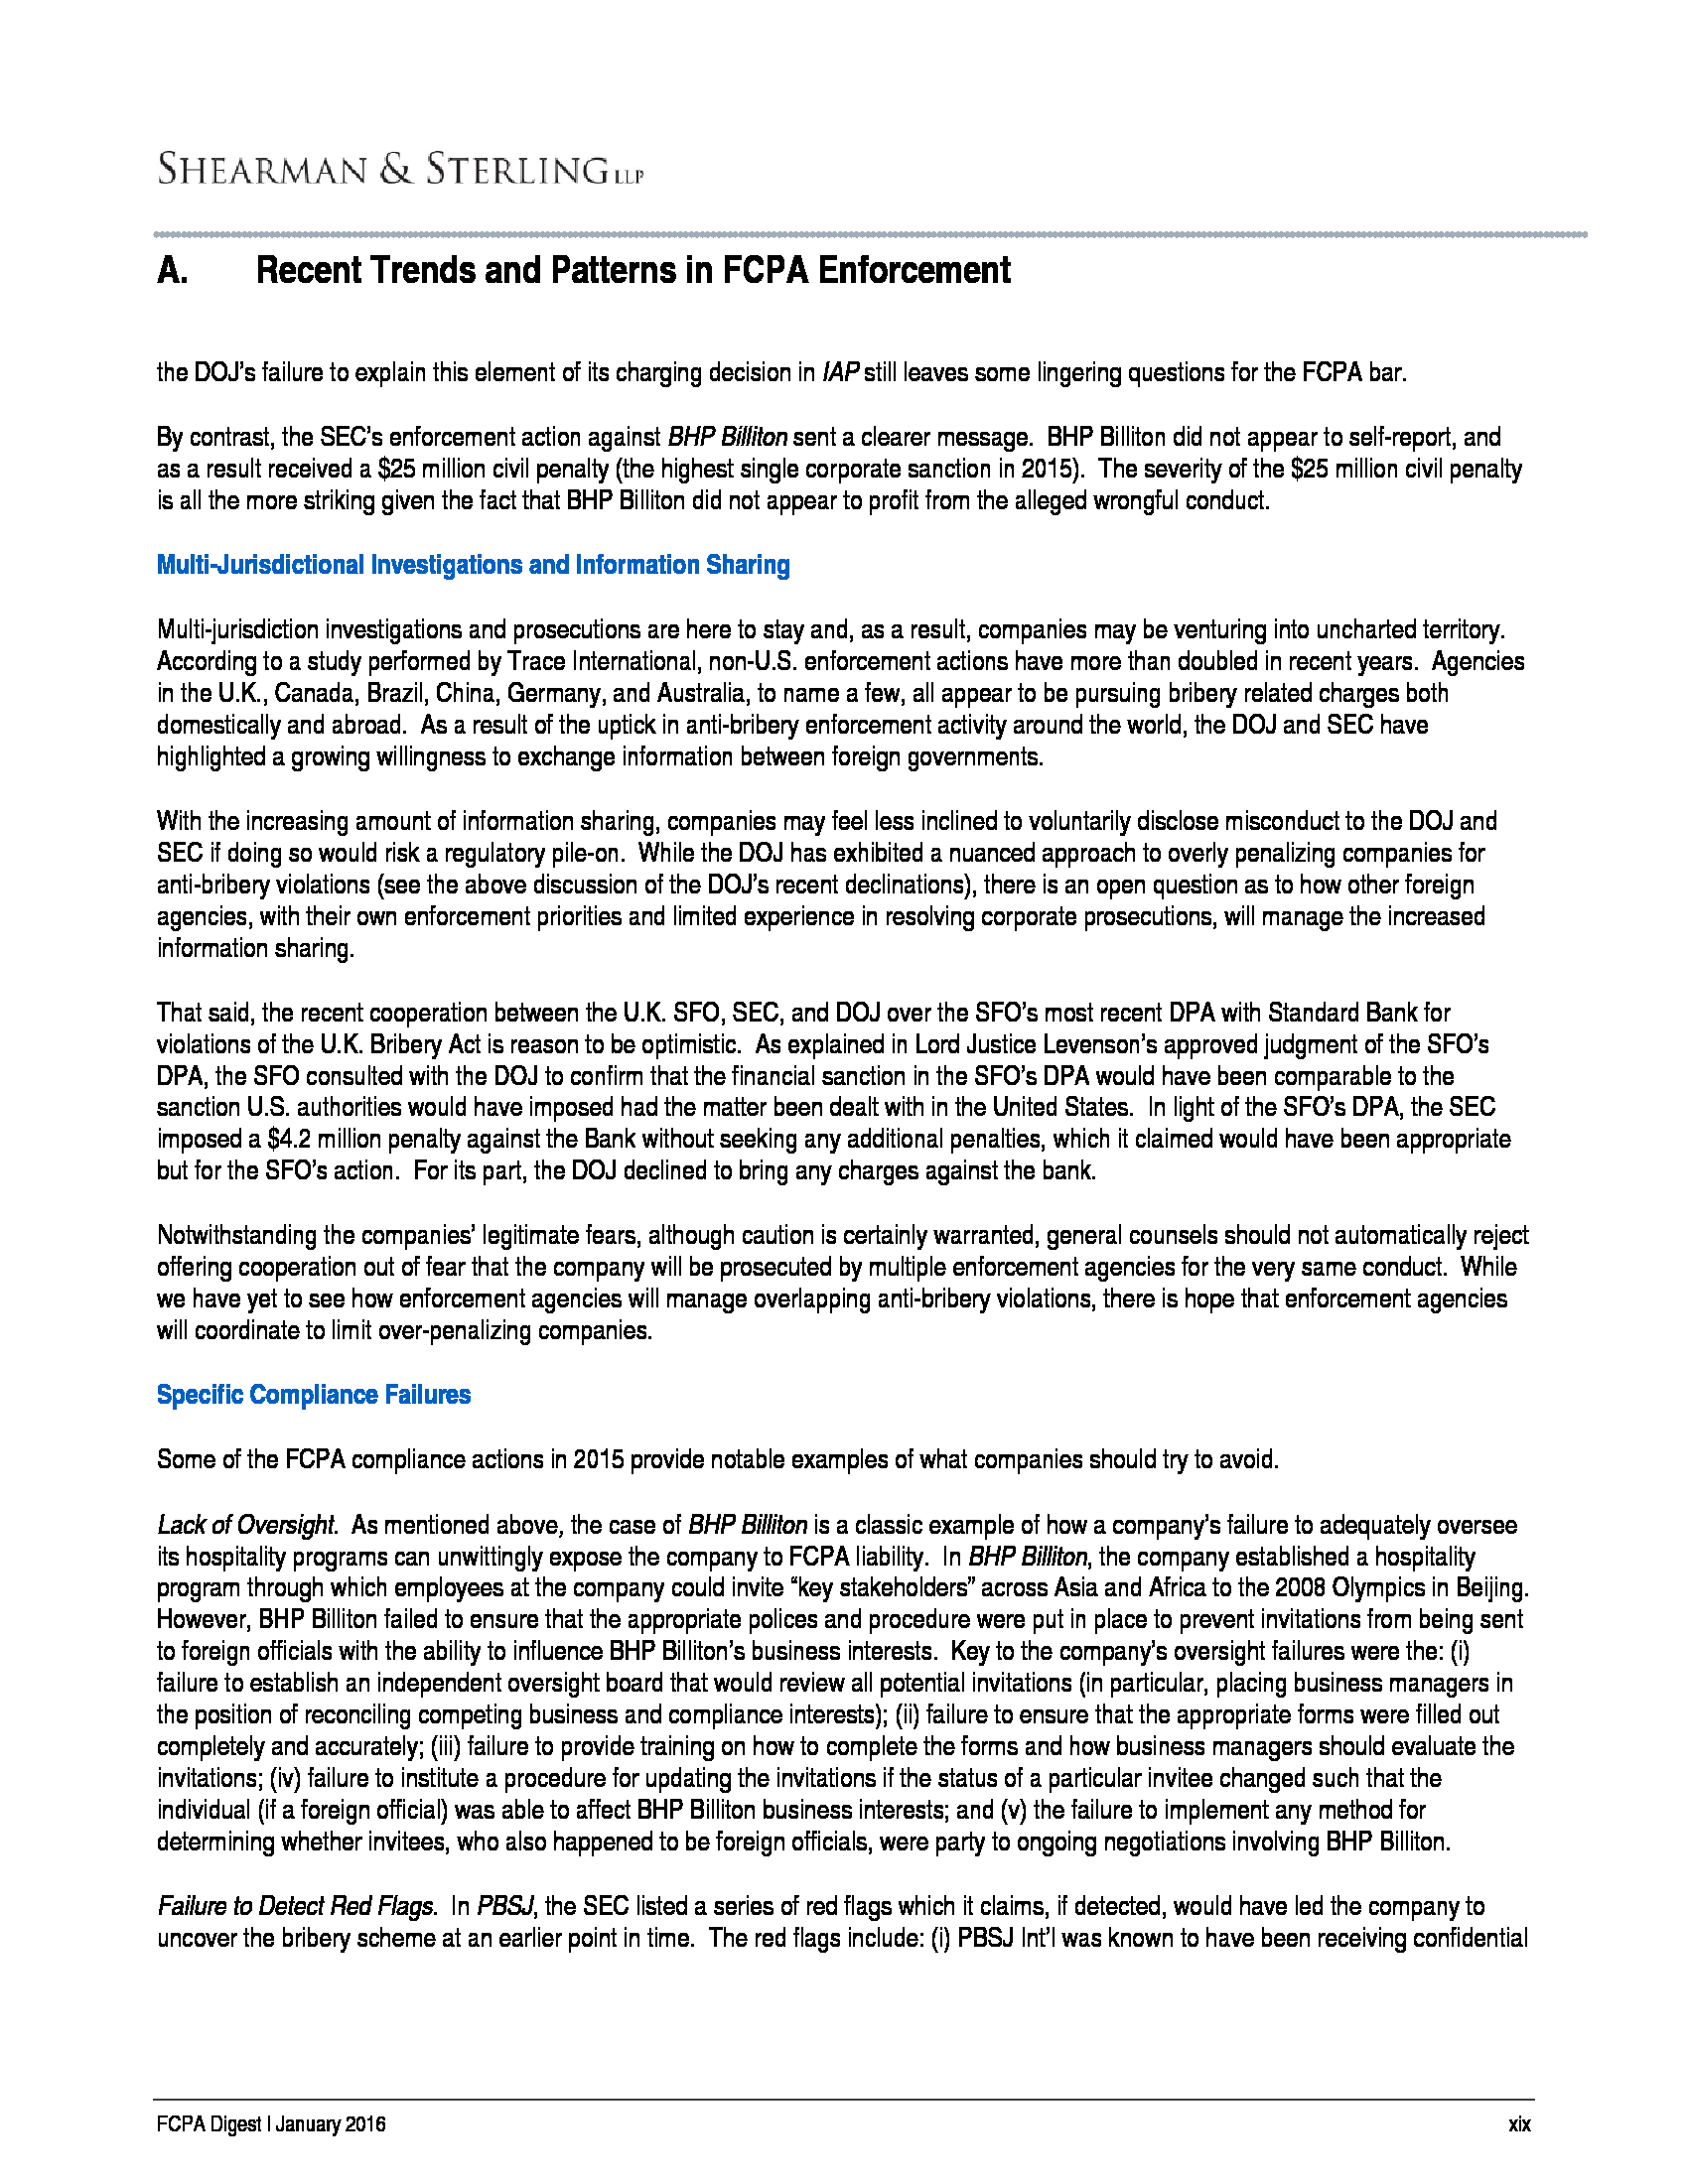 Advisorselect - Shearman & Sterling's Recent Trends and Patterns in